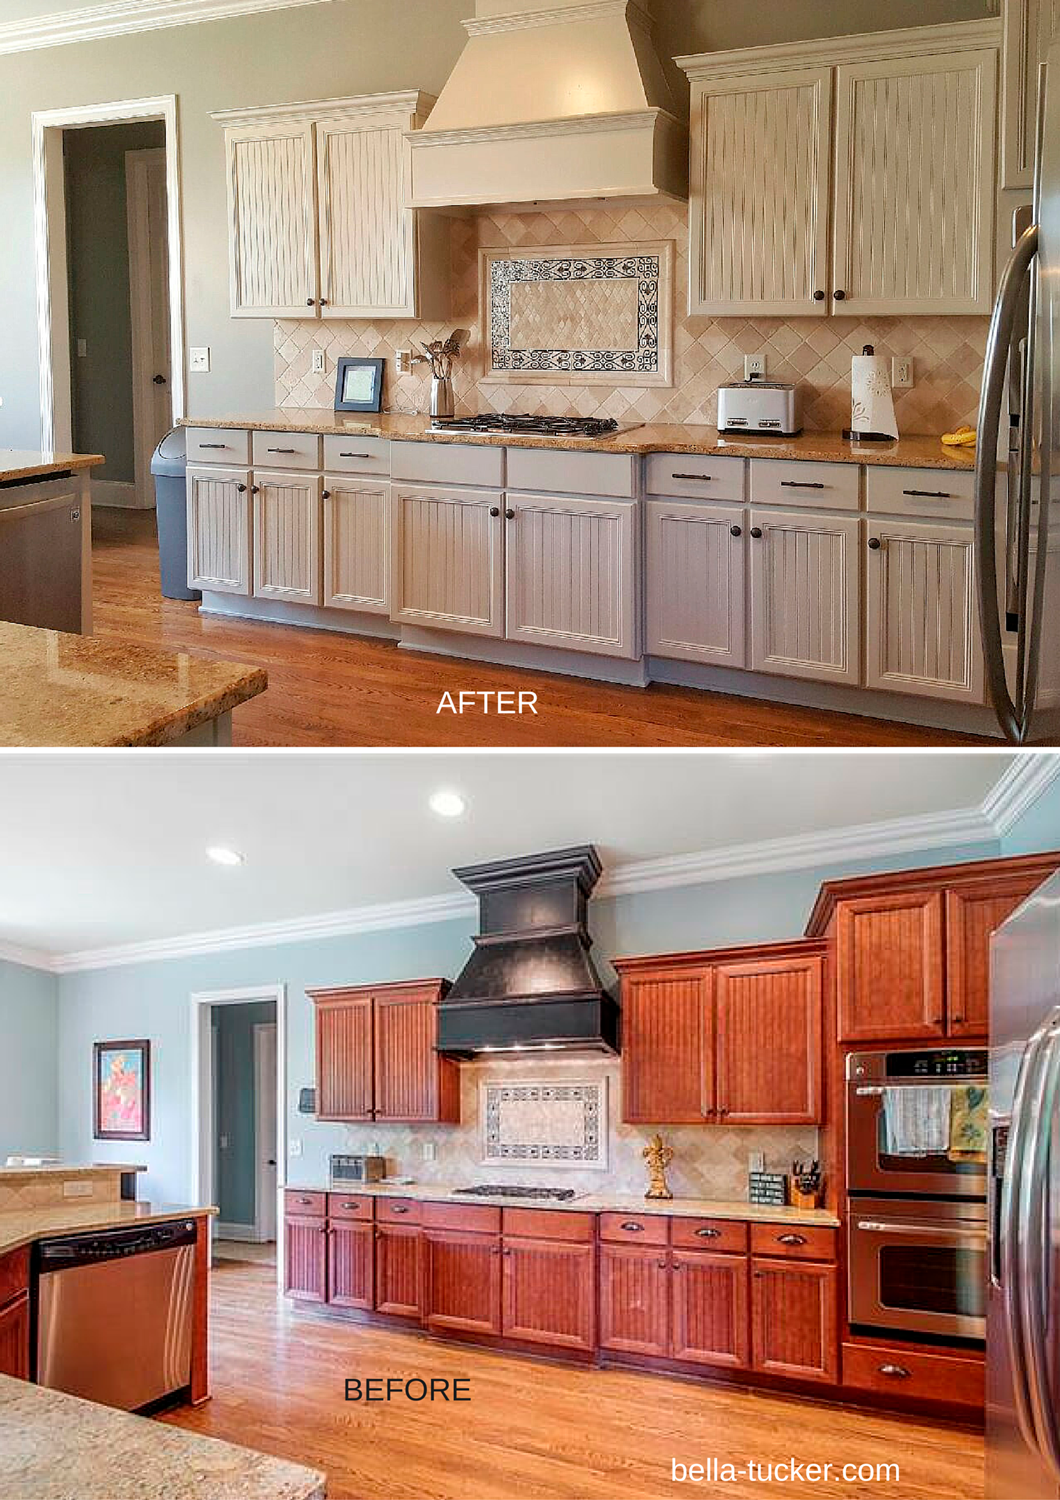 painting wood cabinets whitePainted Cabinets Nashville TN Before and After Photos